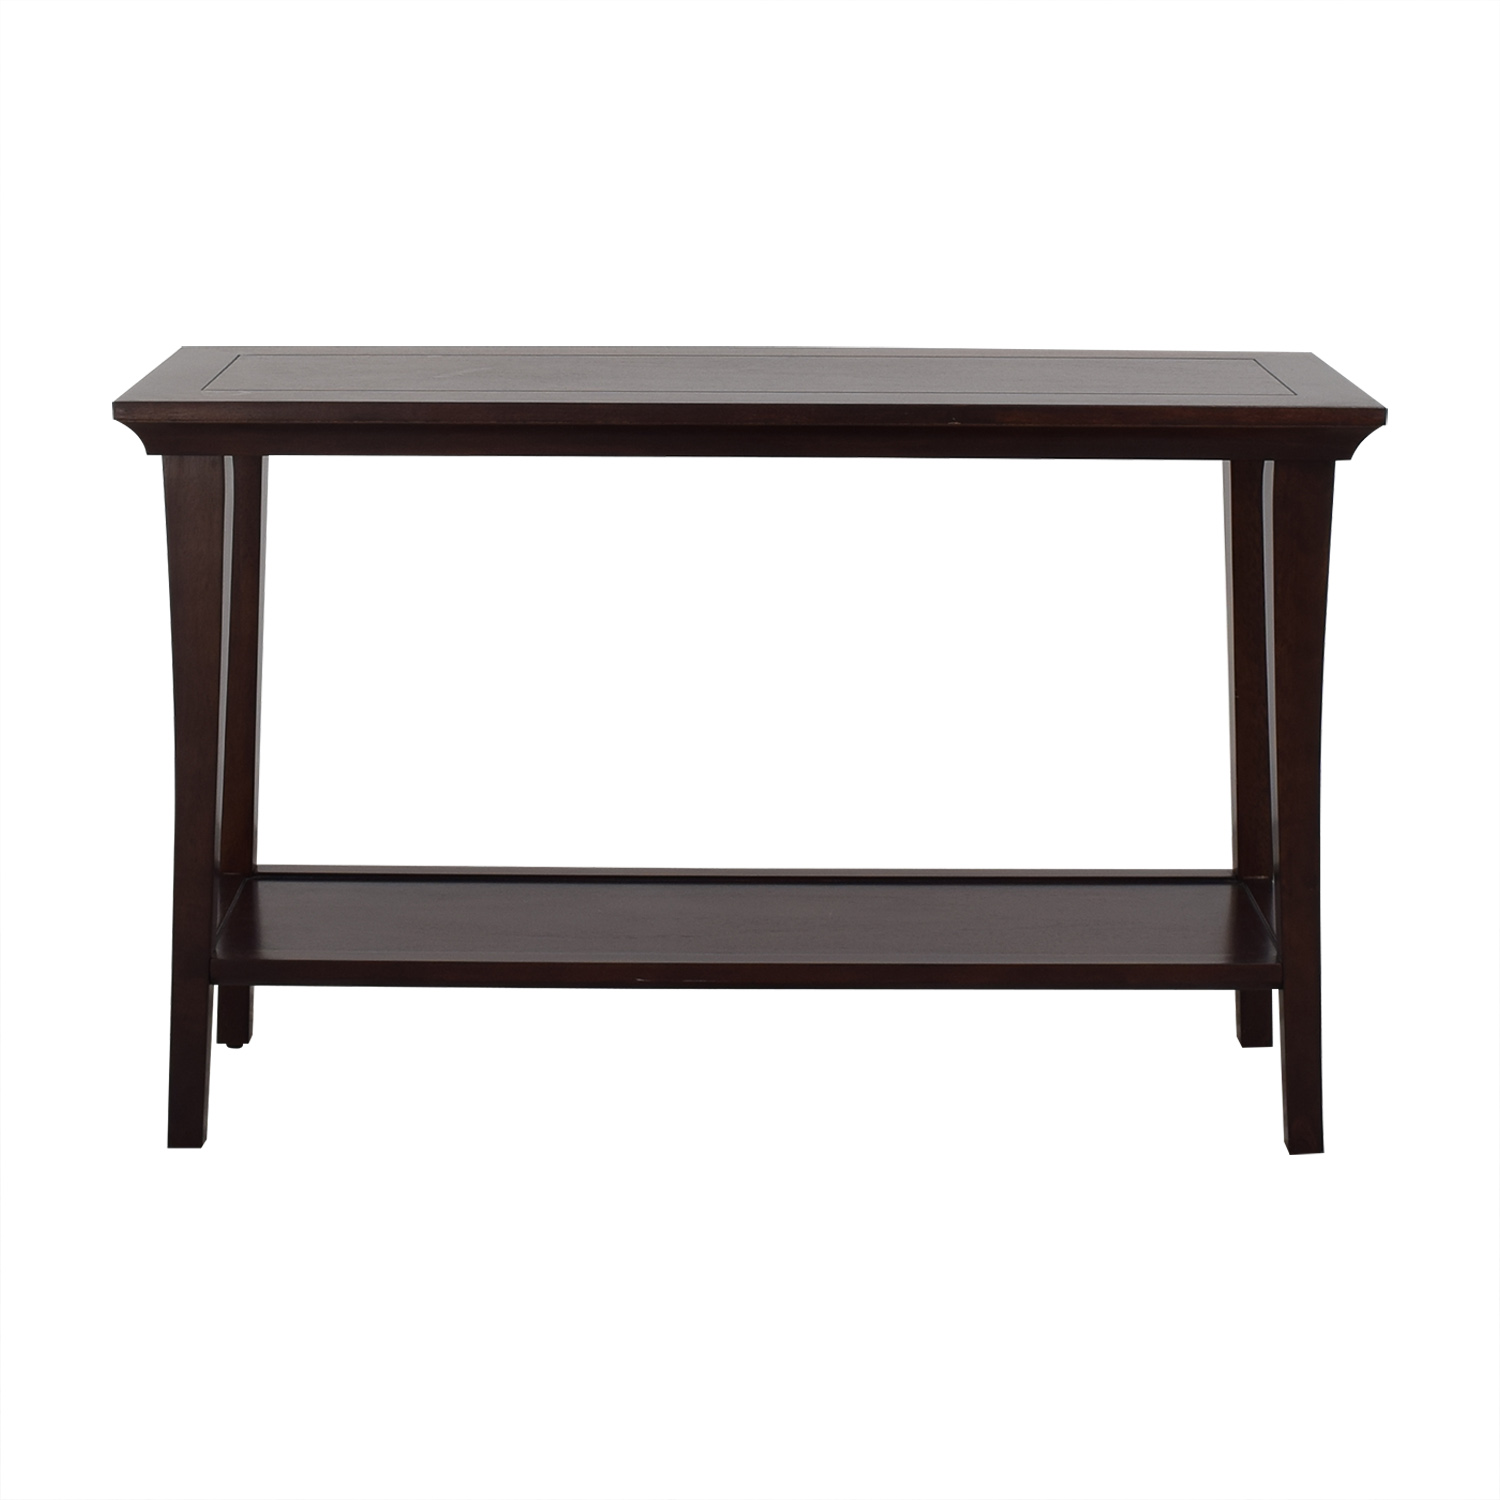 buy Pottery Barn Pottery Barn Metropolitan Console Table online